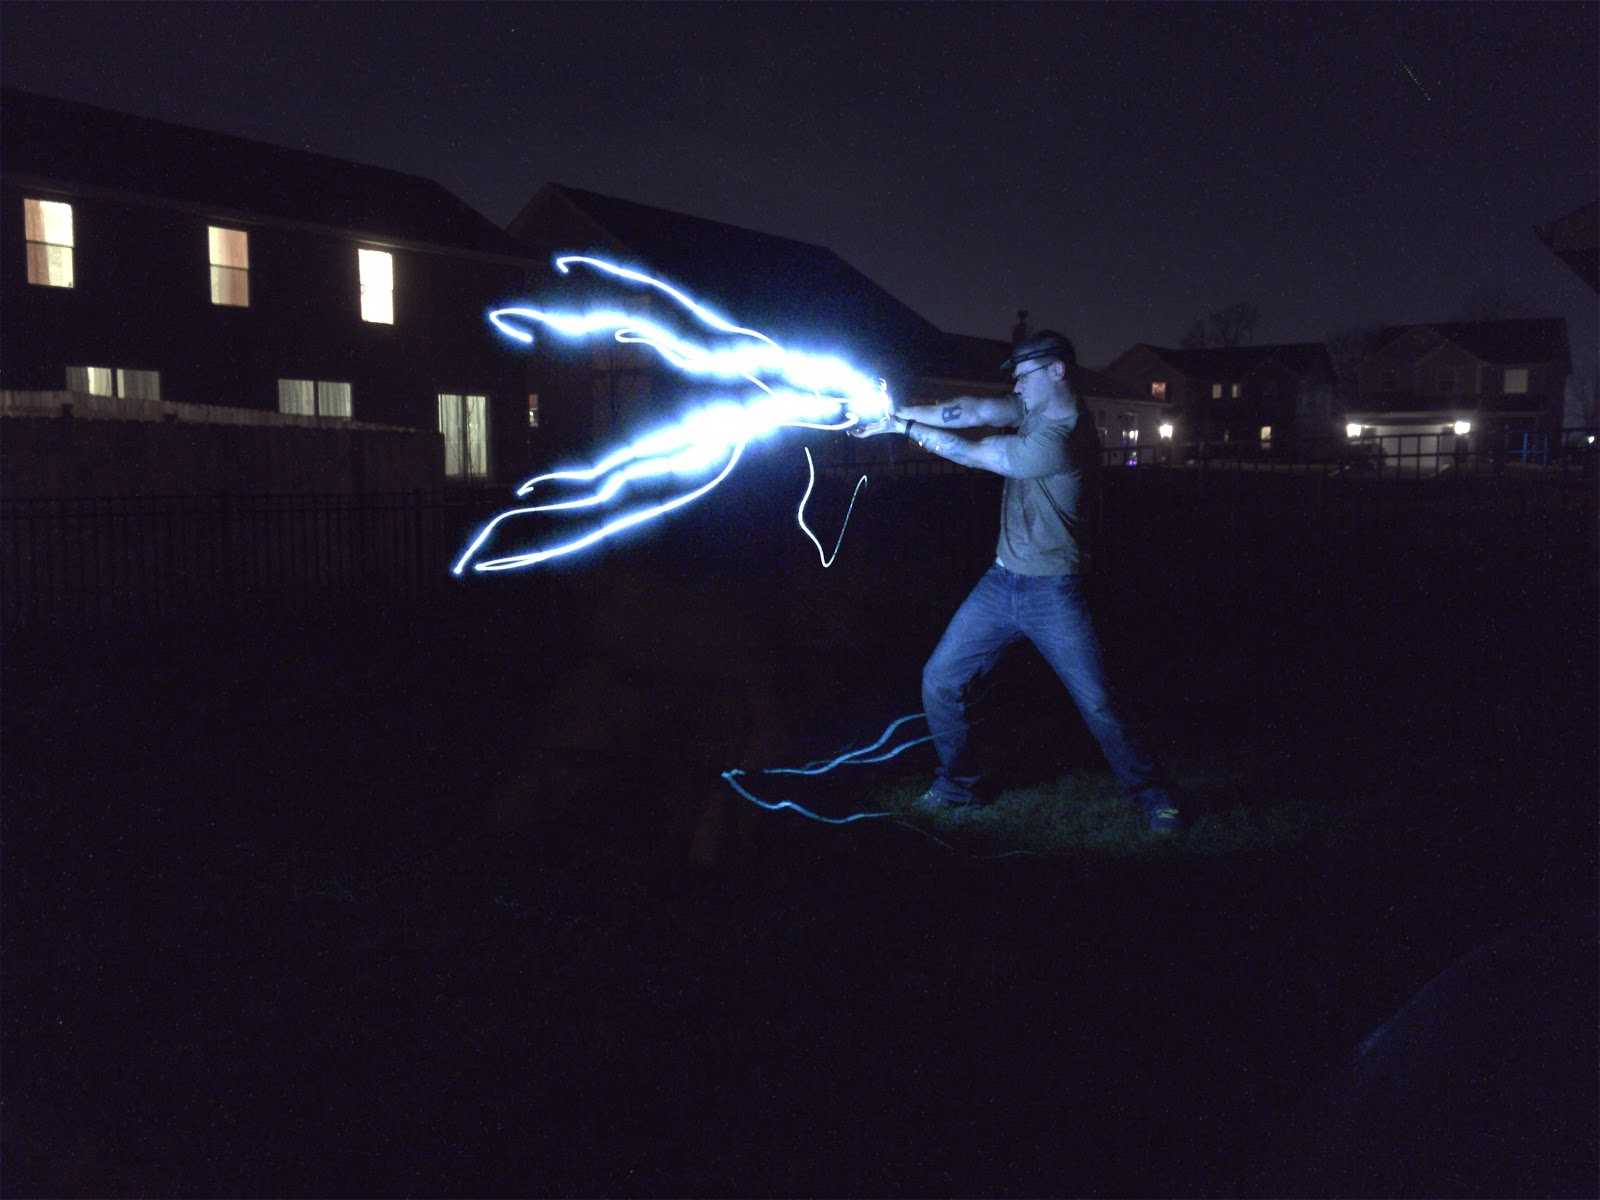 shoot energy from hands light painting